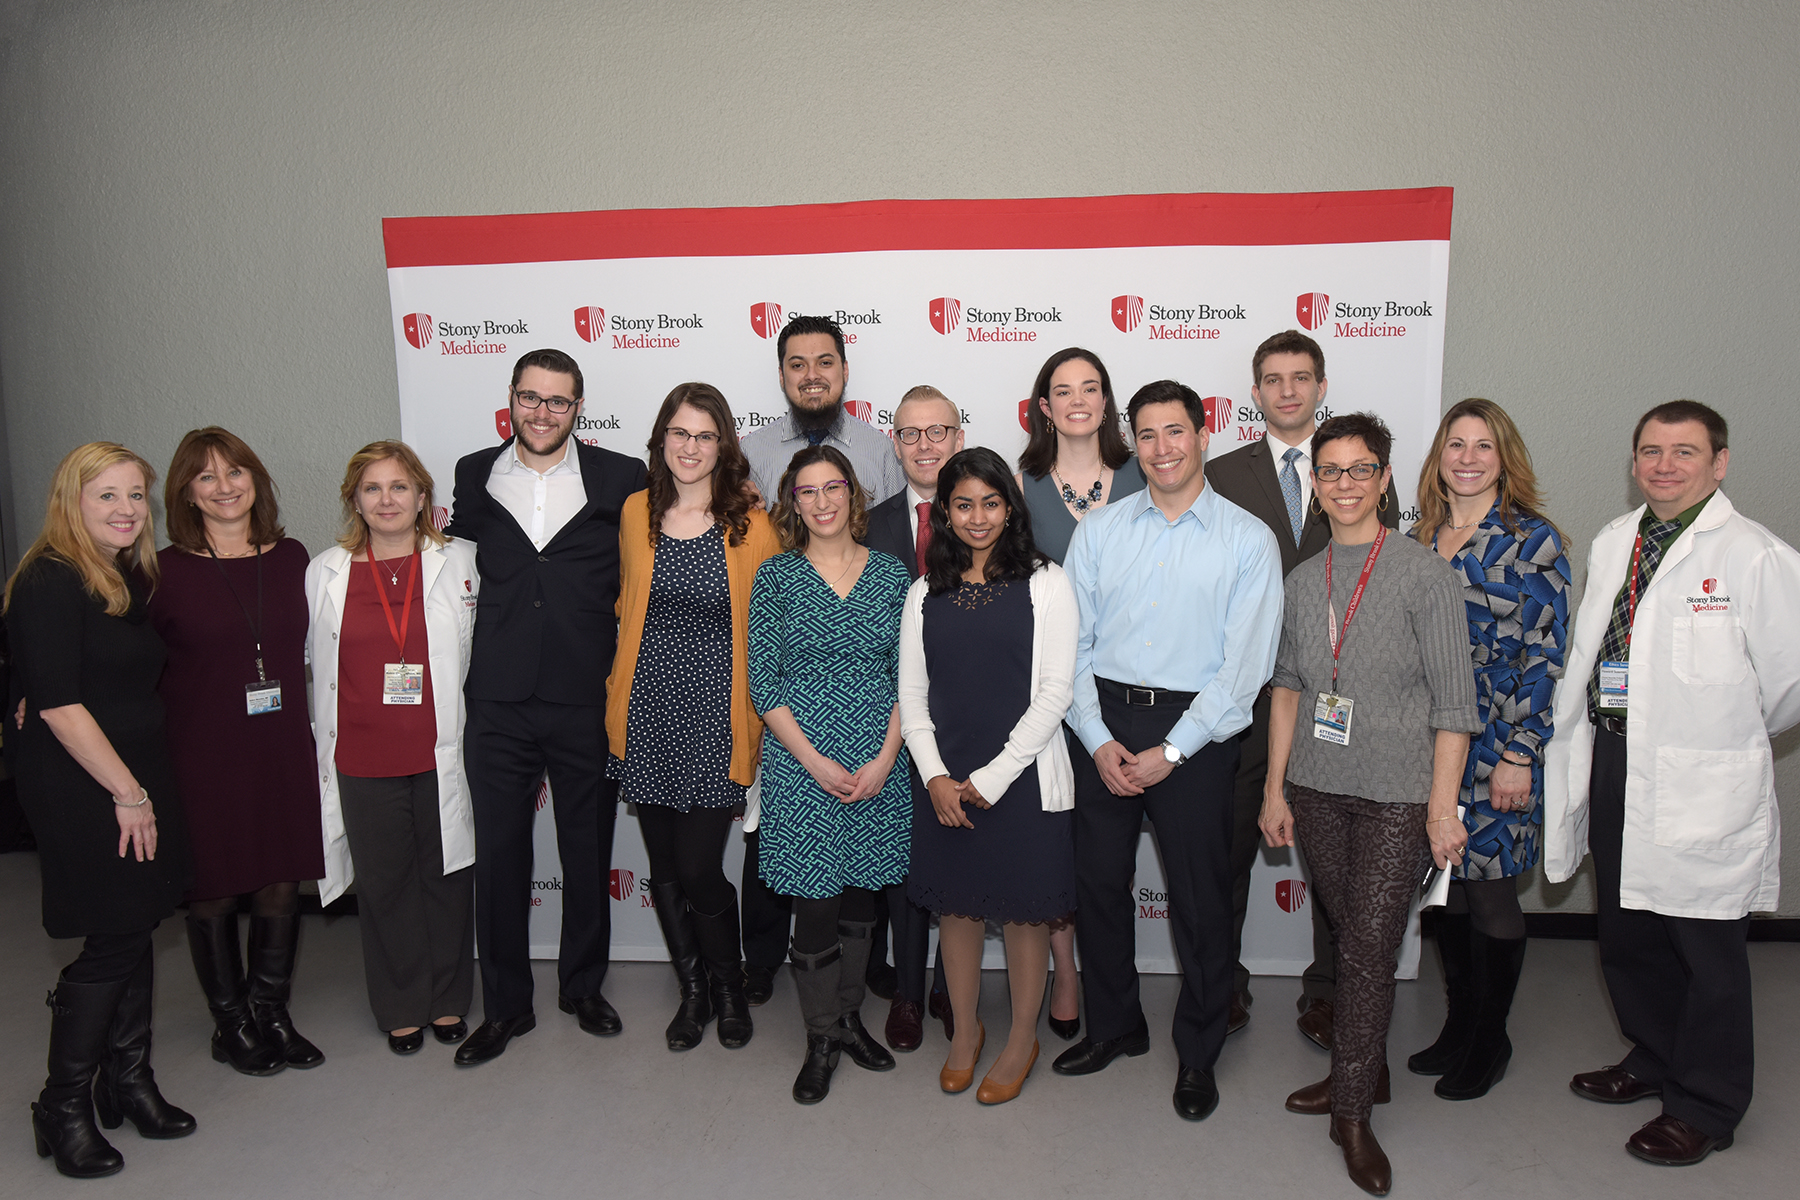 Pictured are some of the students who will remain at Stony Brook as residents (preliminary or full residency), along with alumni who are also Stony Brook Medicine faculty.